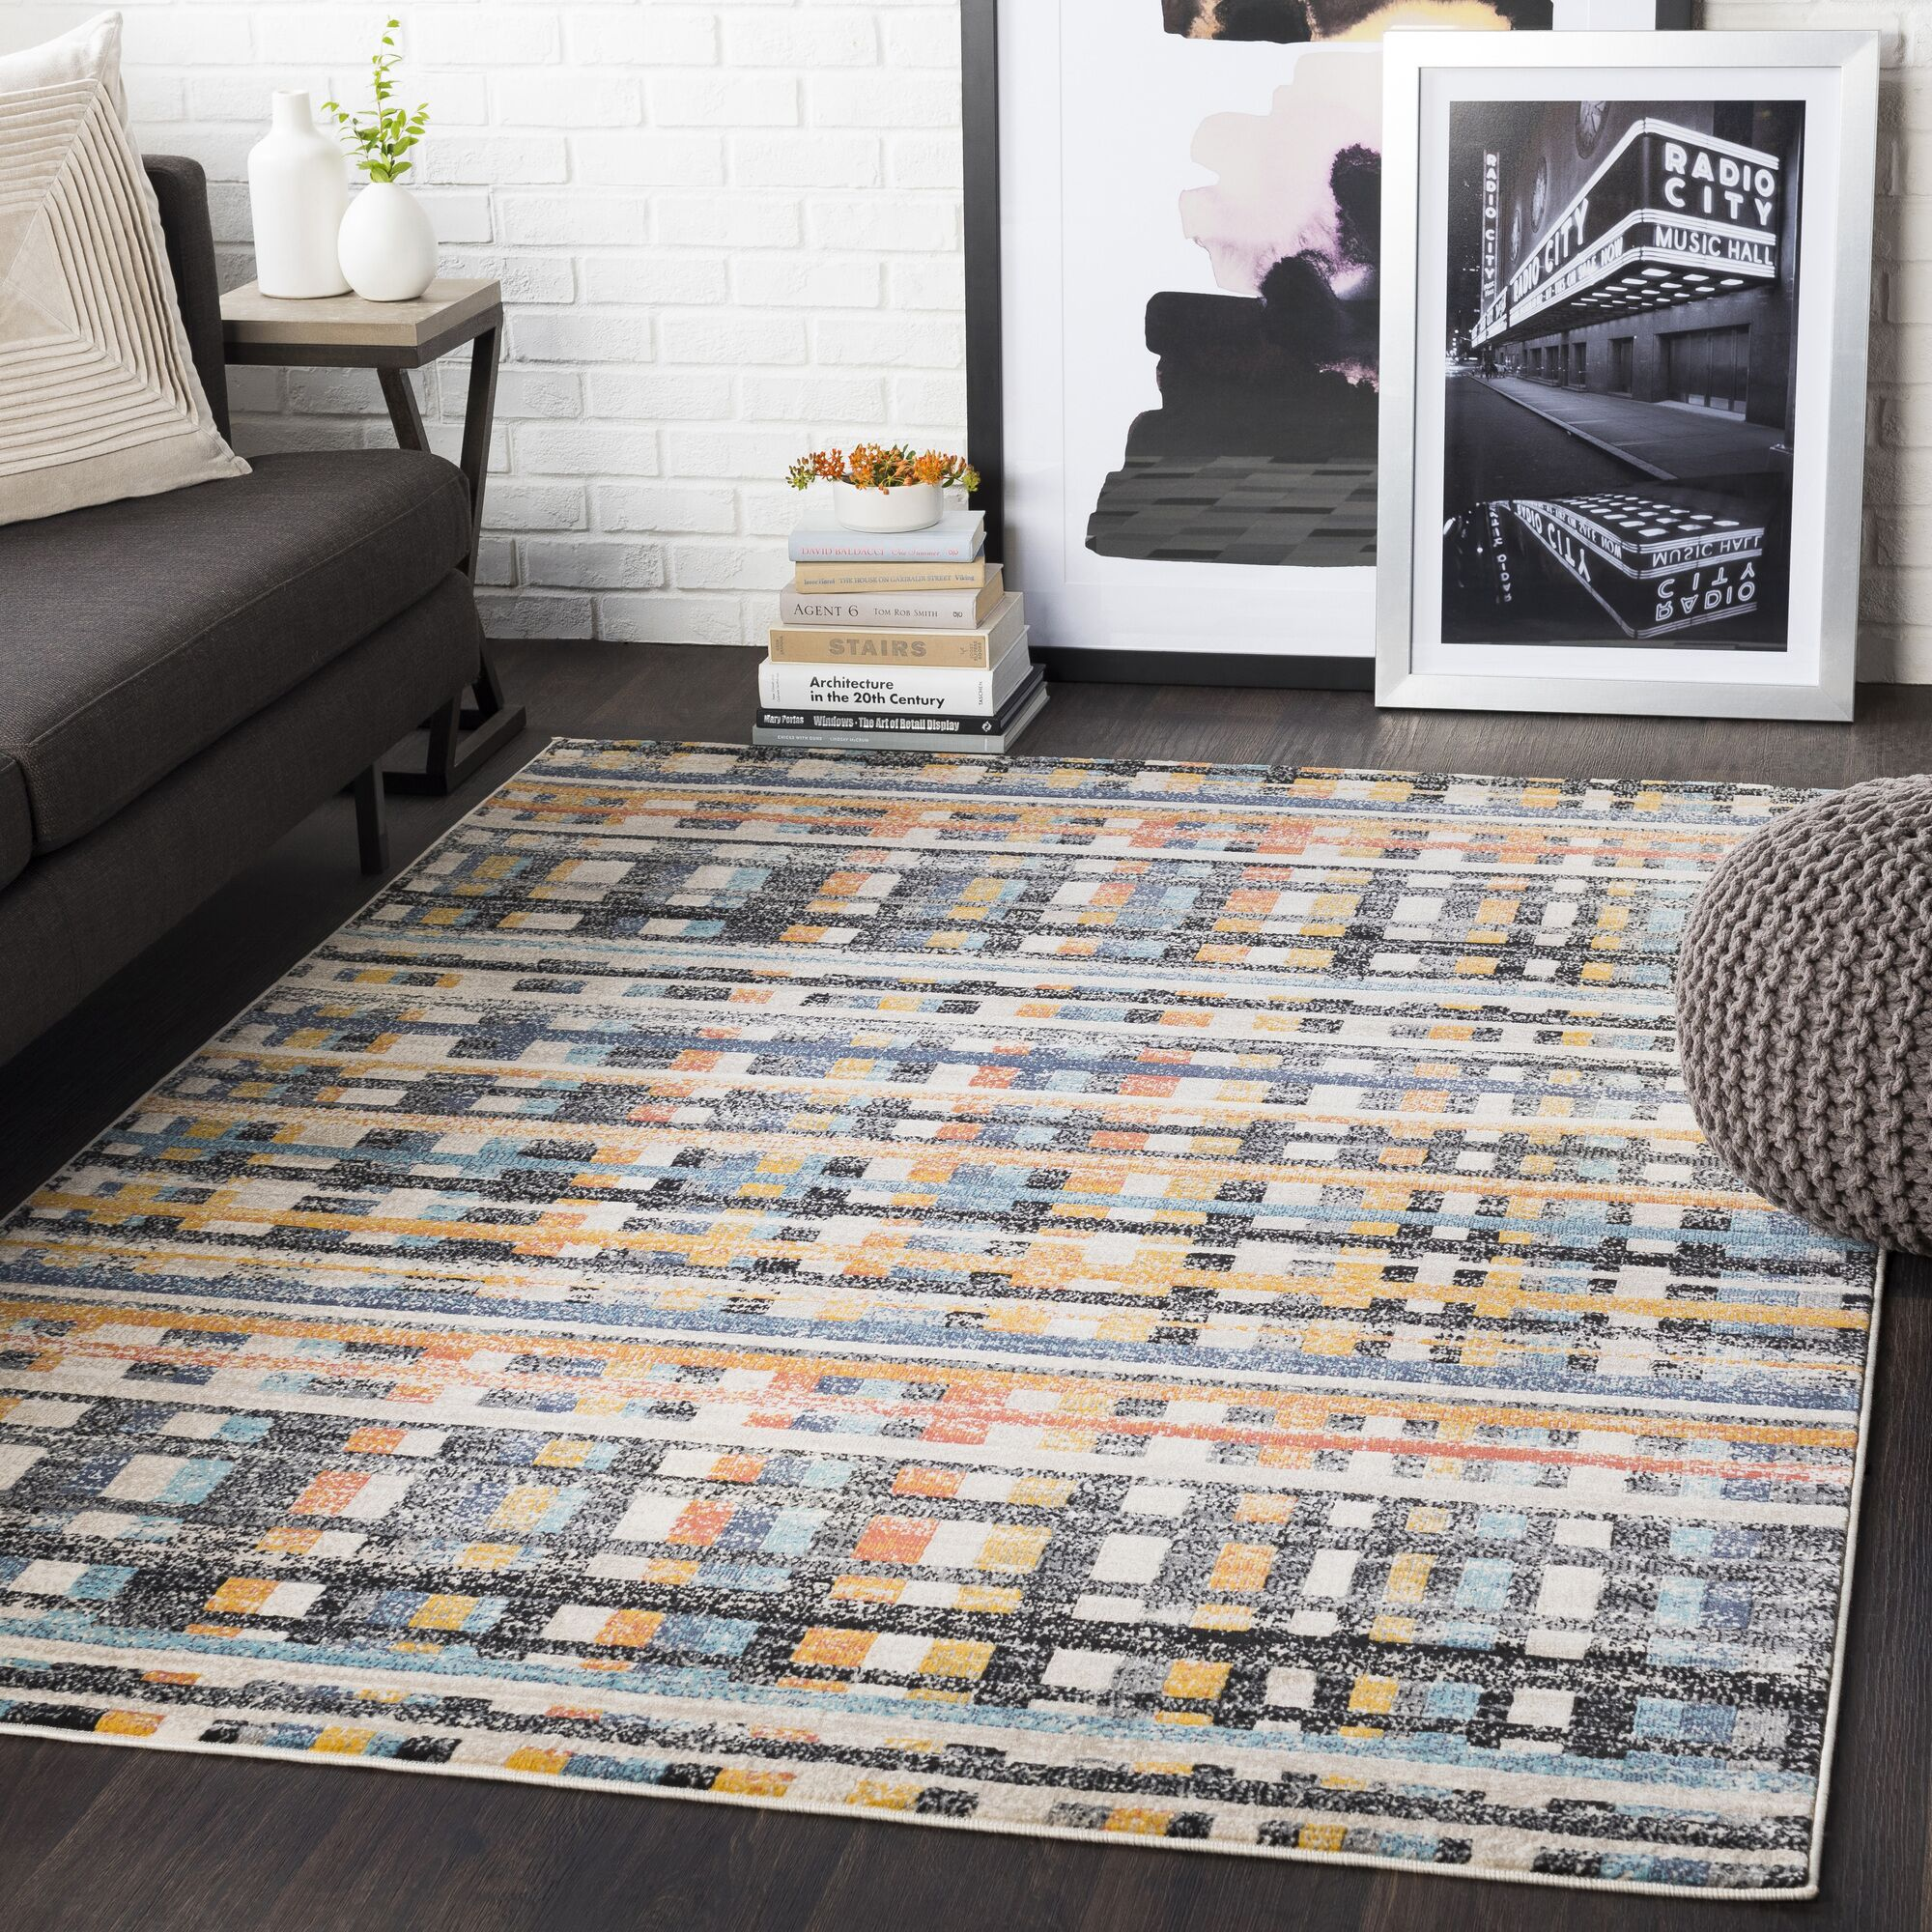 Bahr Distressed Geometric Coral/Mustard Area Rug Rug Size: Rectangle 5'3